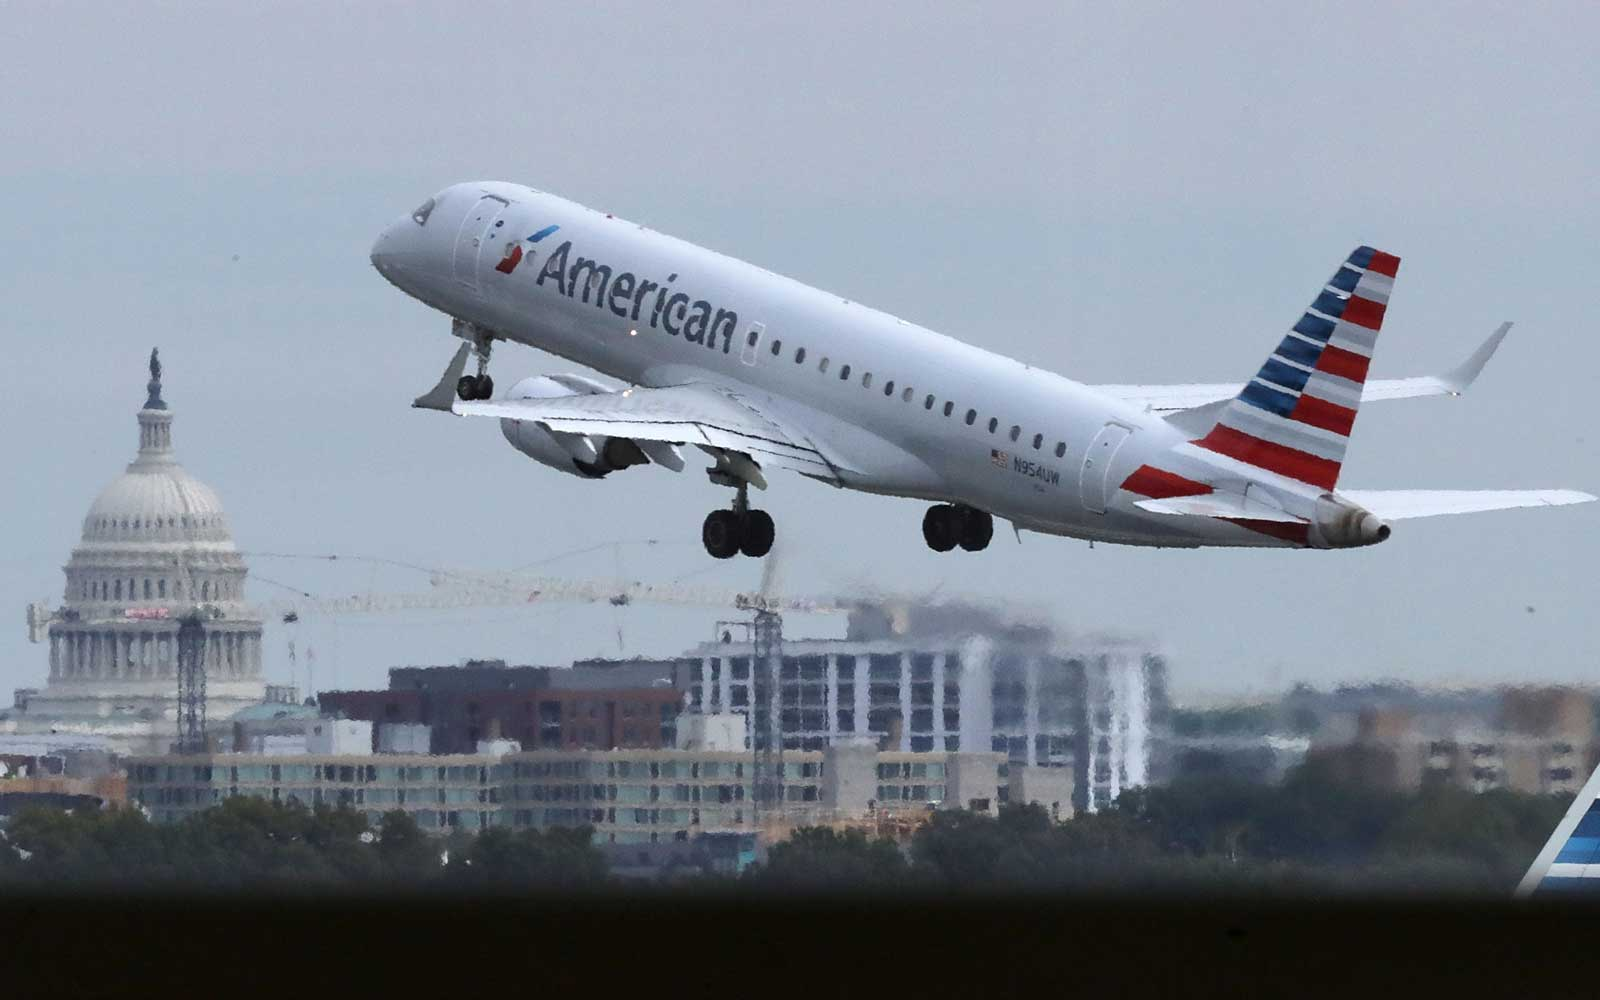 Airlines Tell Government to Keep Separated Migrant Children Off Their Planes Amid Viral Video Fallout